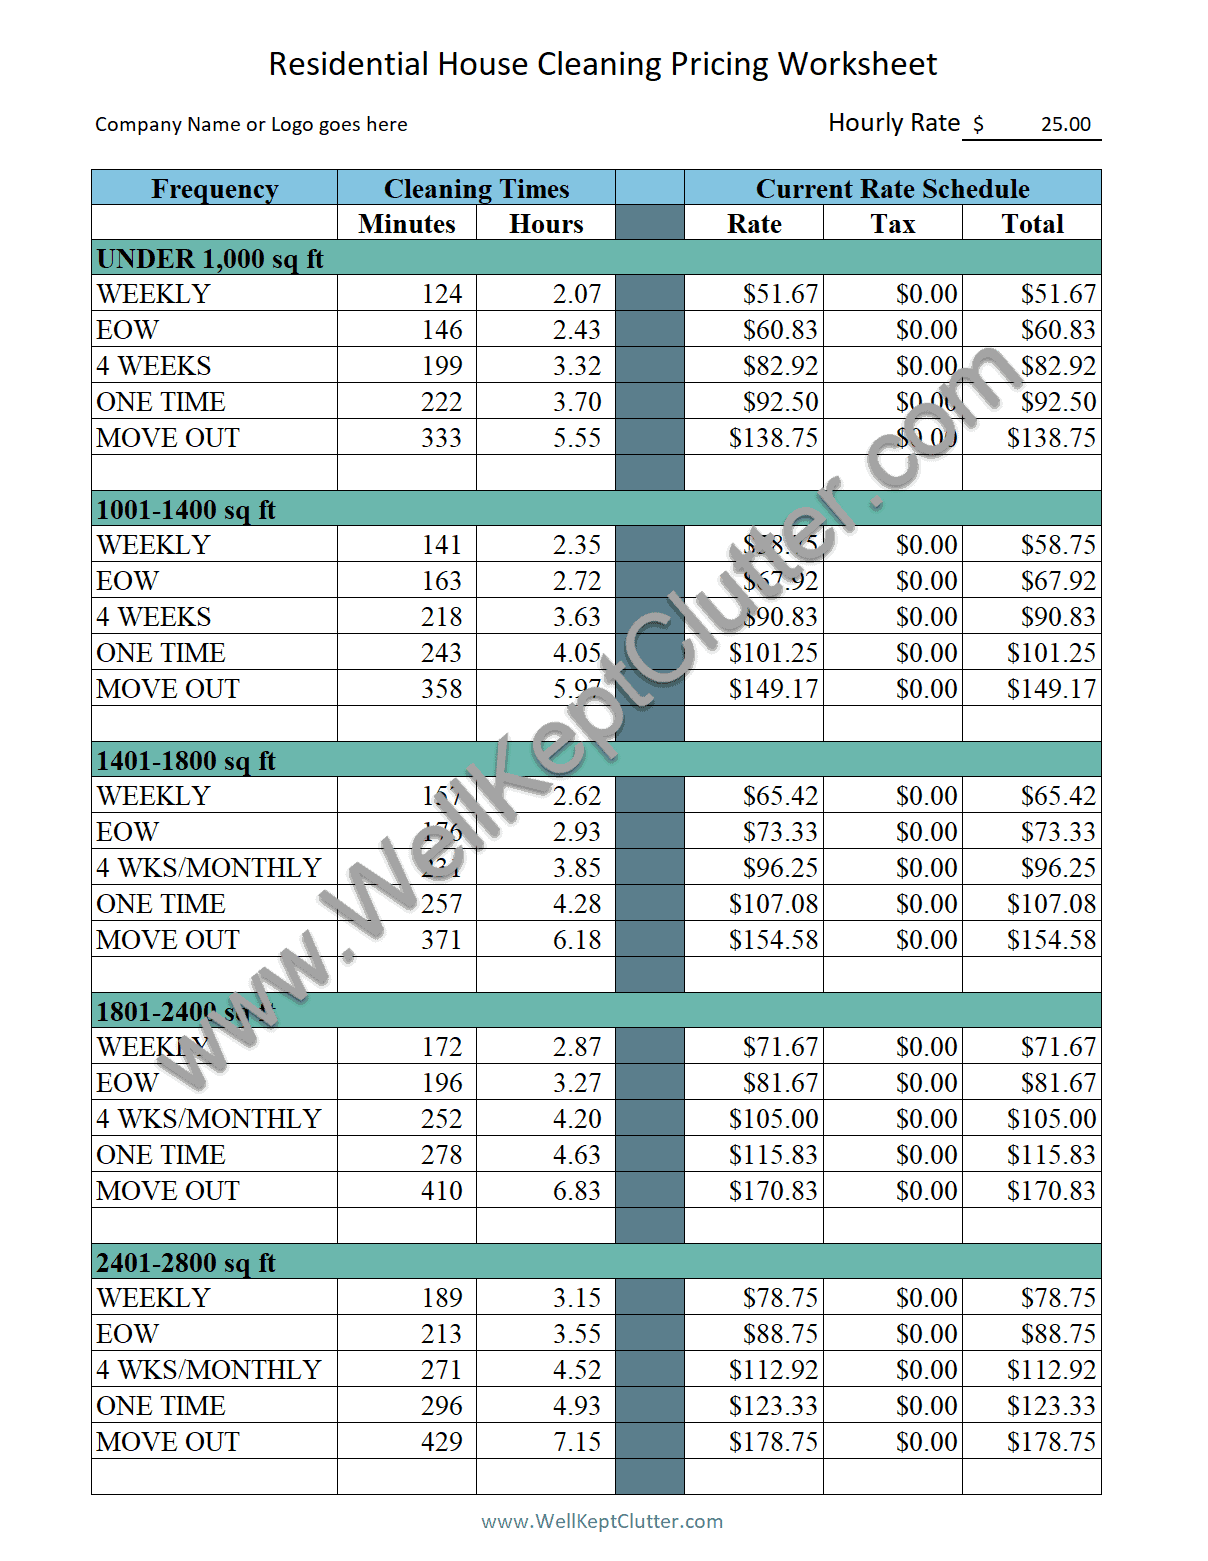 Price Worksheet Picture